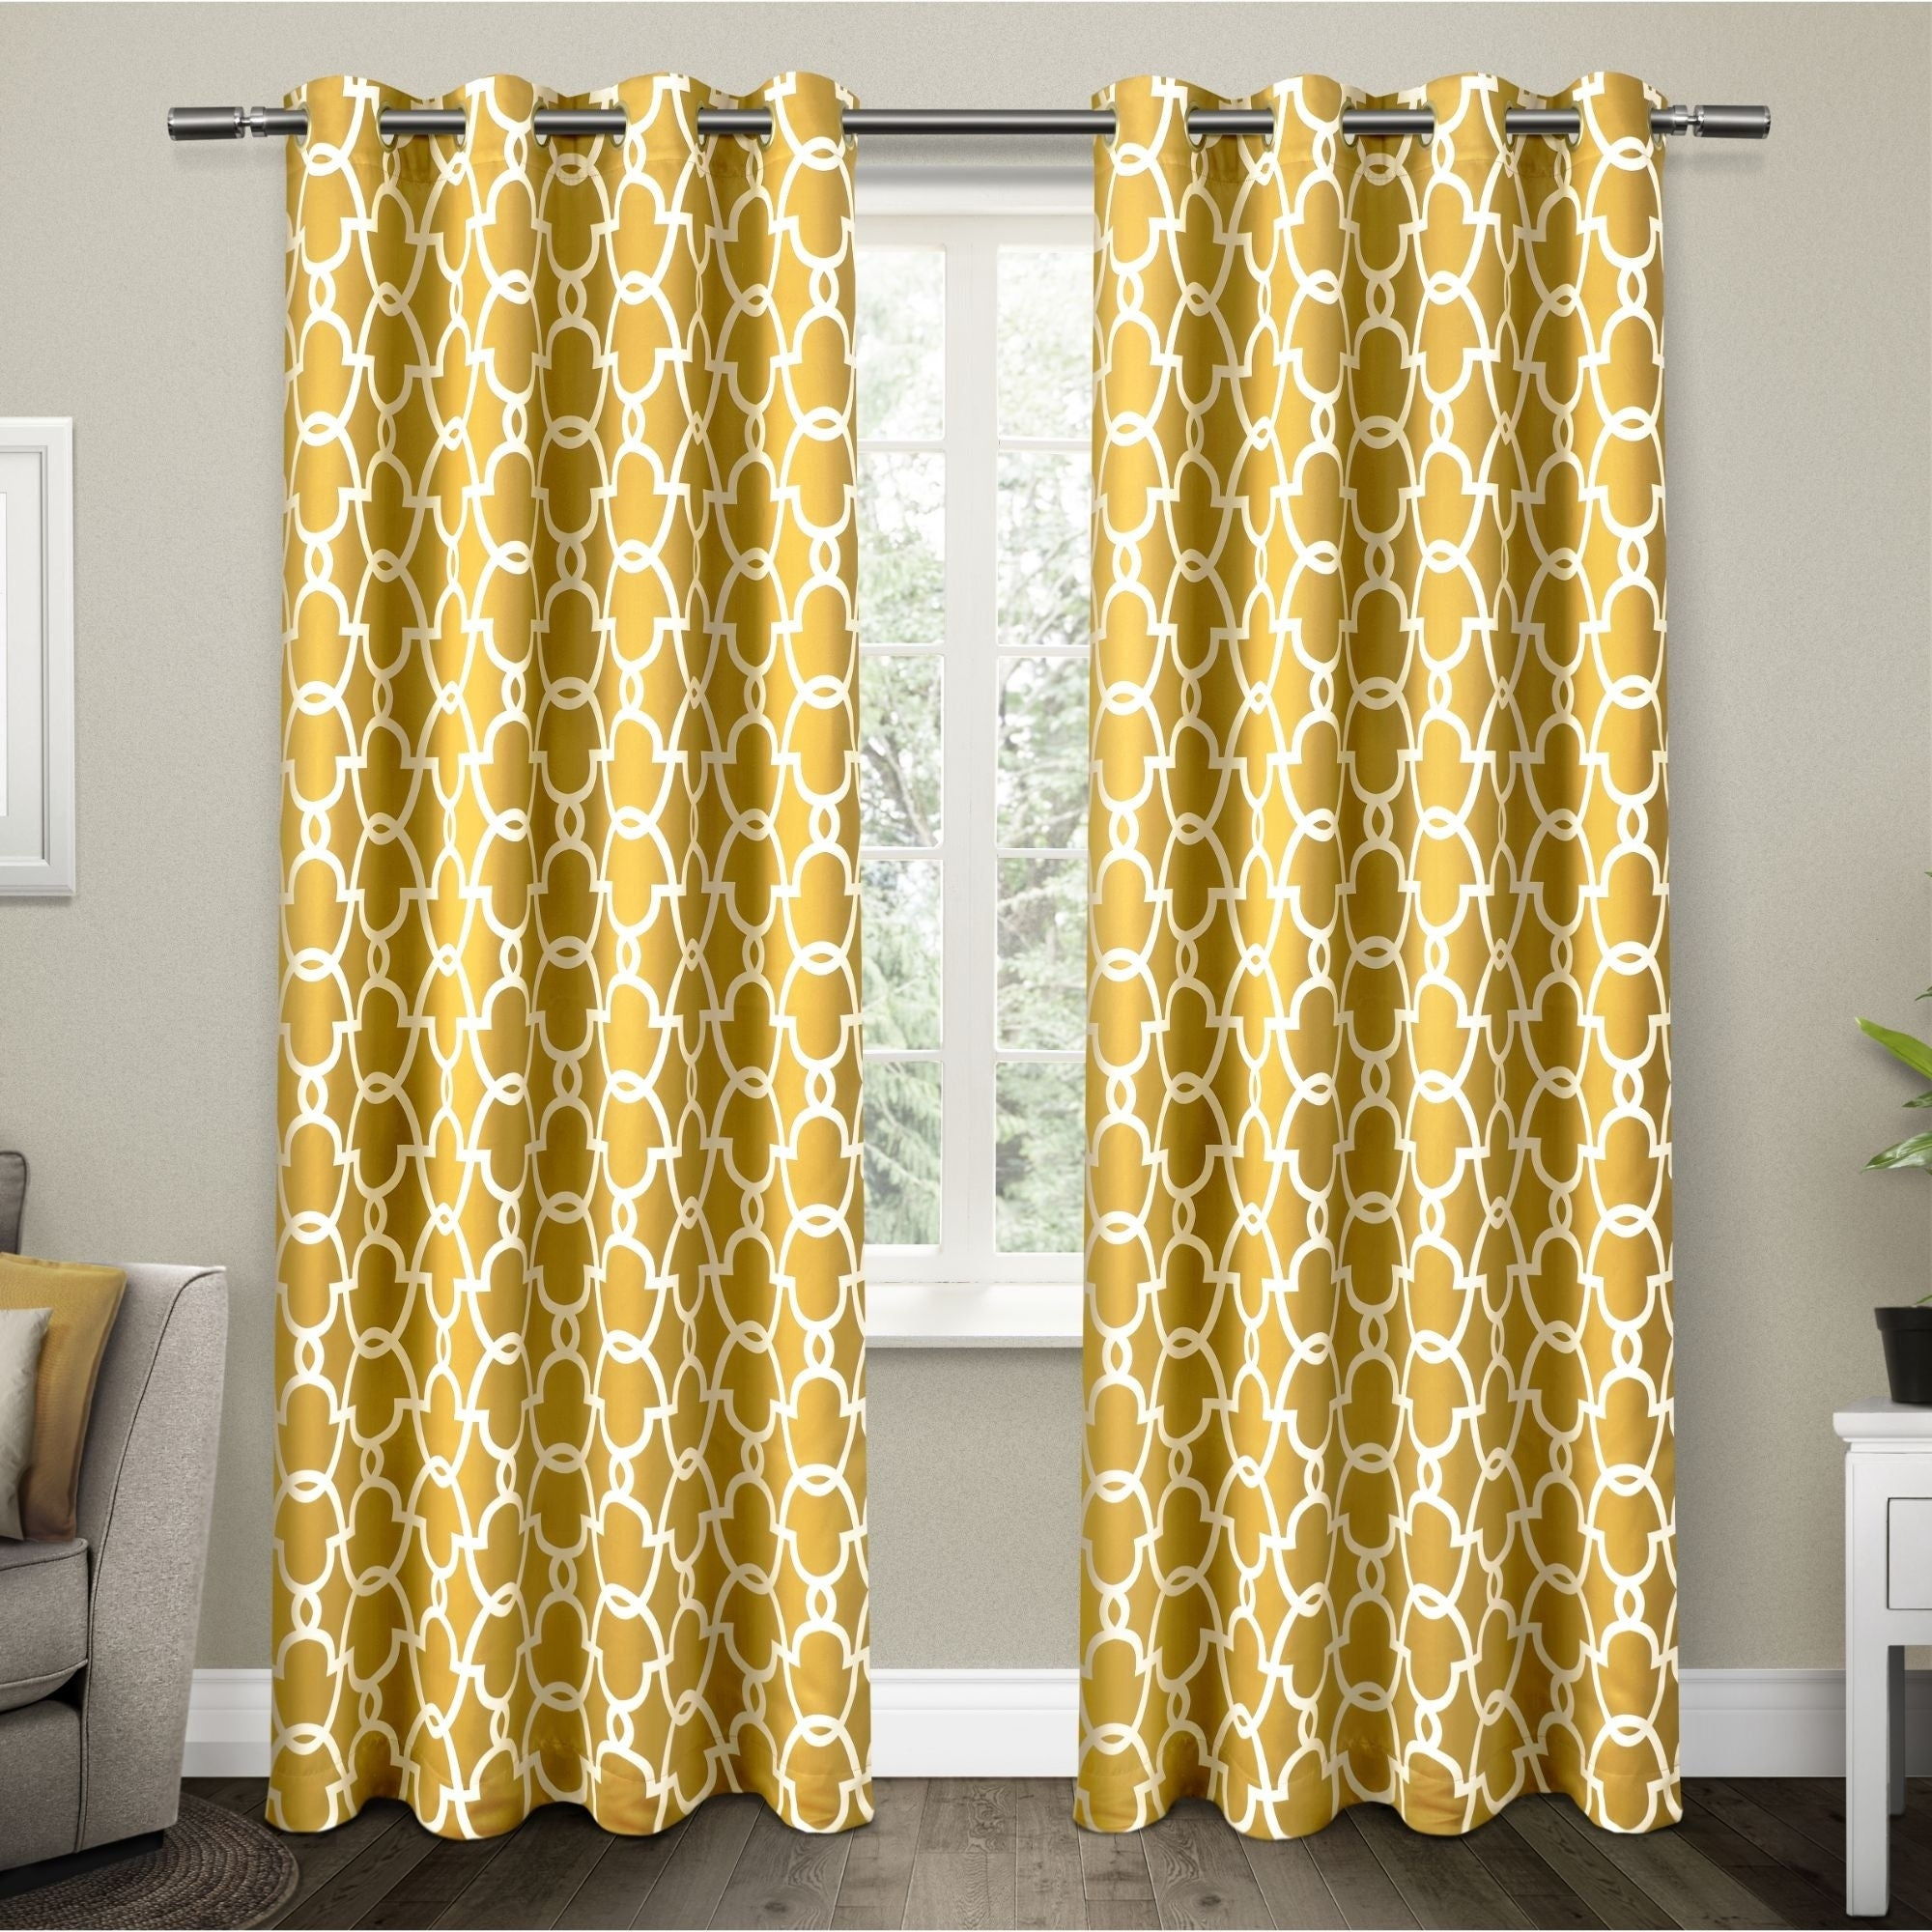 The Curated Nomad Vicksburg Thermal Woven Blackout Grommet Top Curtain Panel Pair With The Curated Nomad Duane Blackout Curtain Panel Pairs (View 21 of 30)